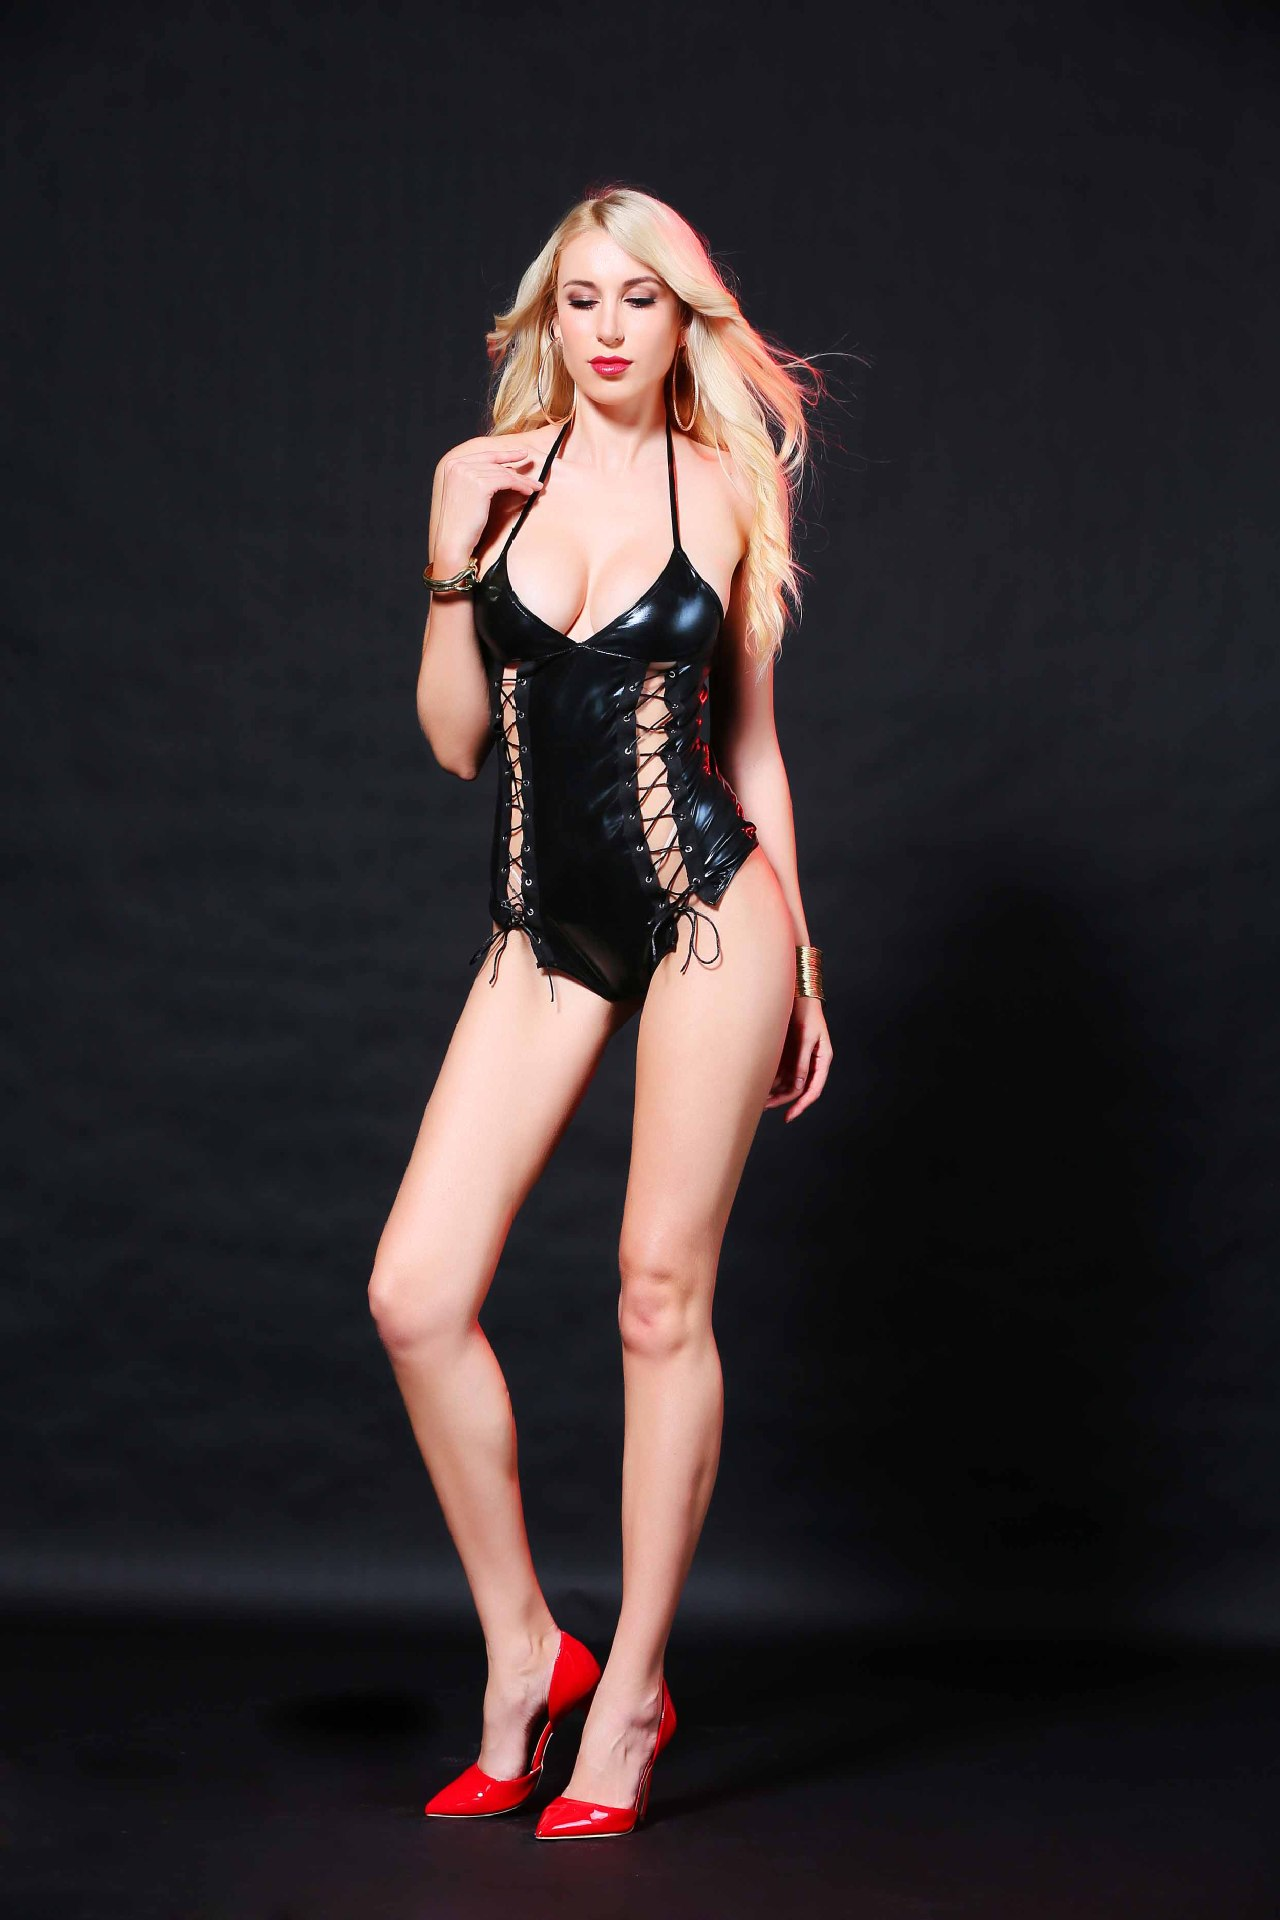 MILLYN black patent leather skinny body locomotive leotard sexy lingerie M XL Erotic bandage faux leather lingerie in Babydolls Chemises from Novelty Special Use